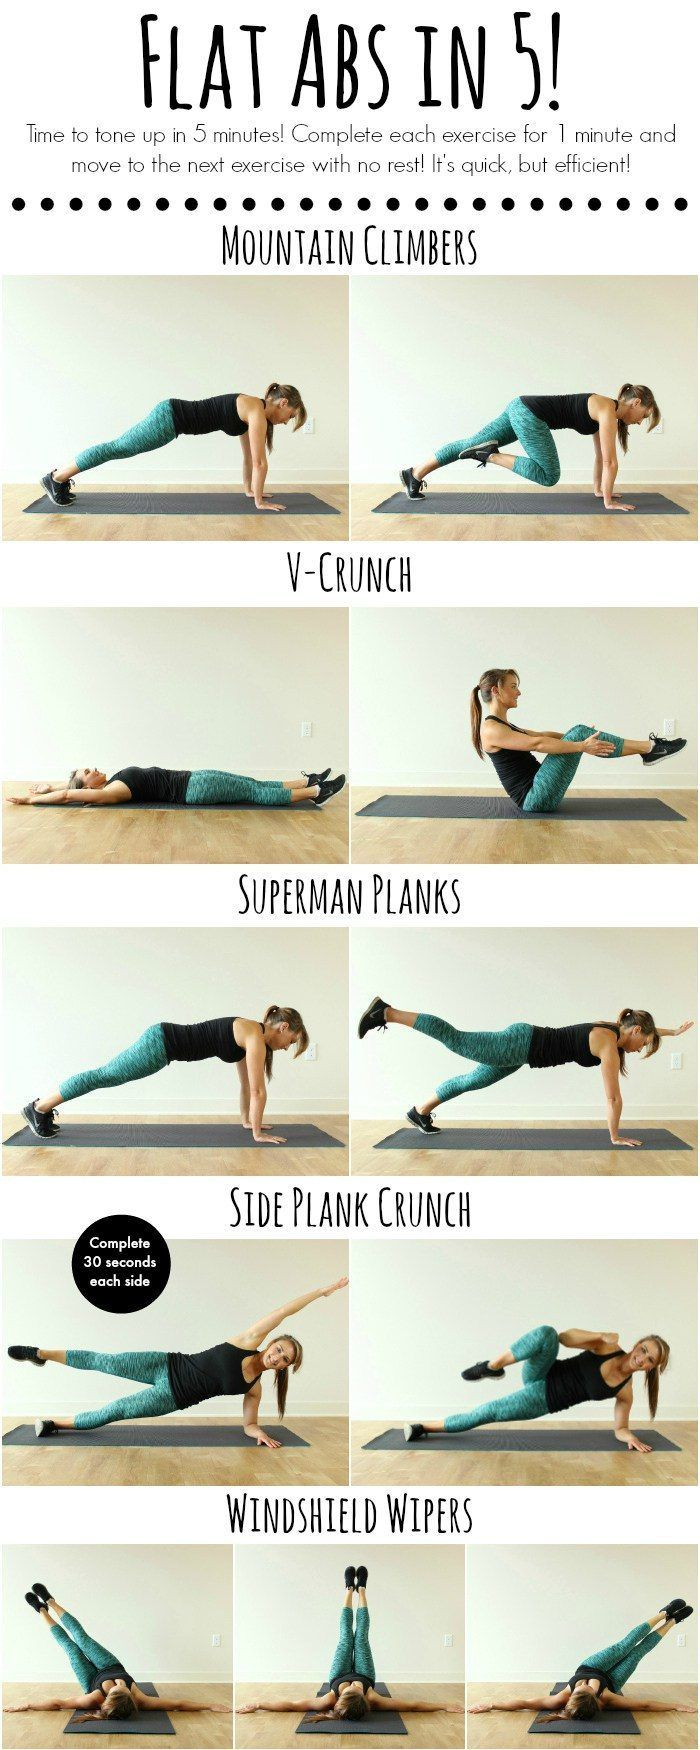 7 Best Exercises in To Do Less Than 15 Minutes to Lose More Than 15 Pounds in a Week